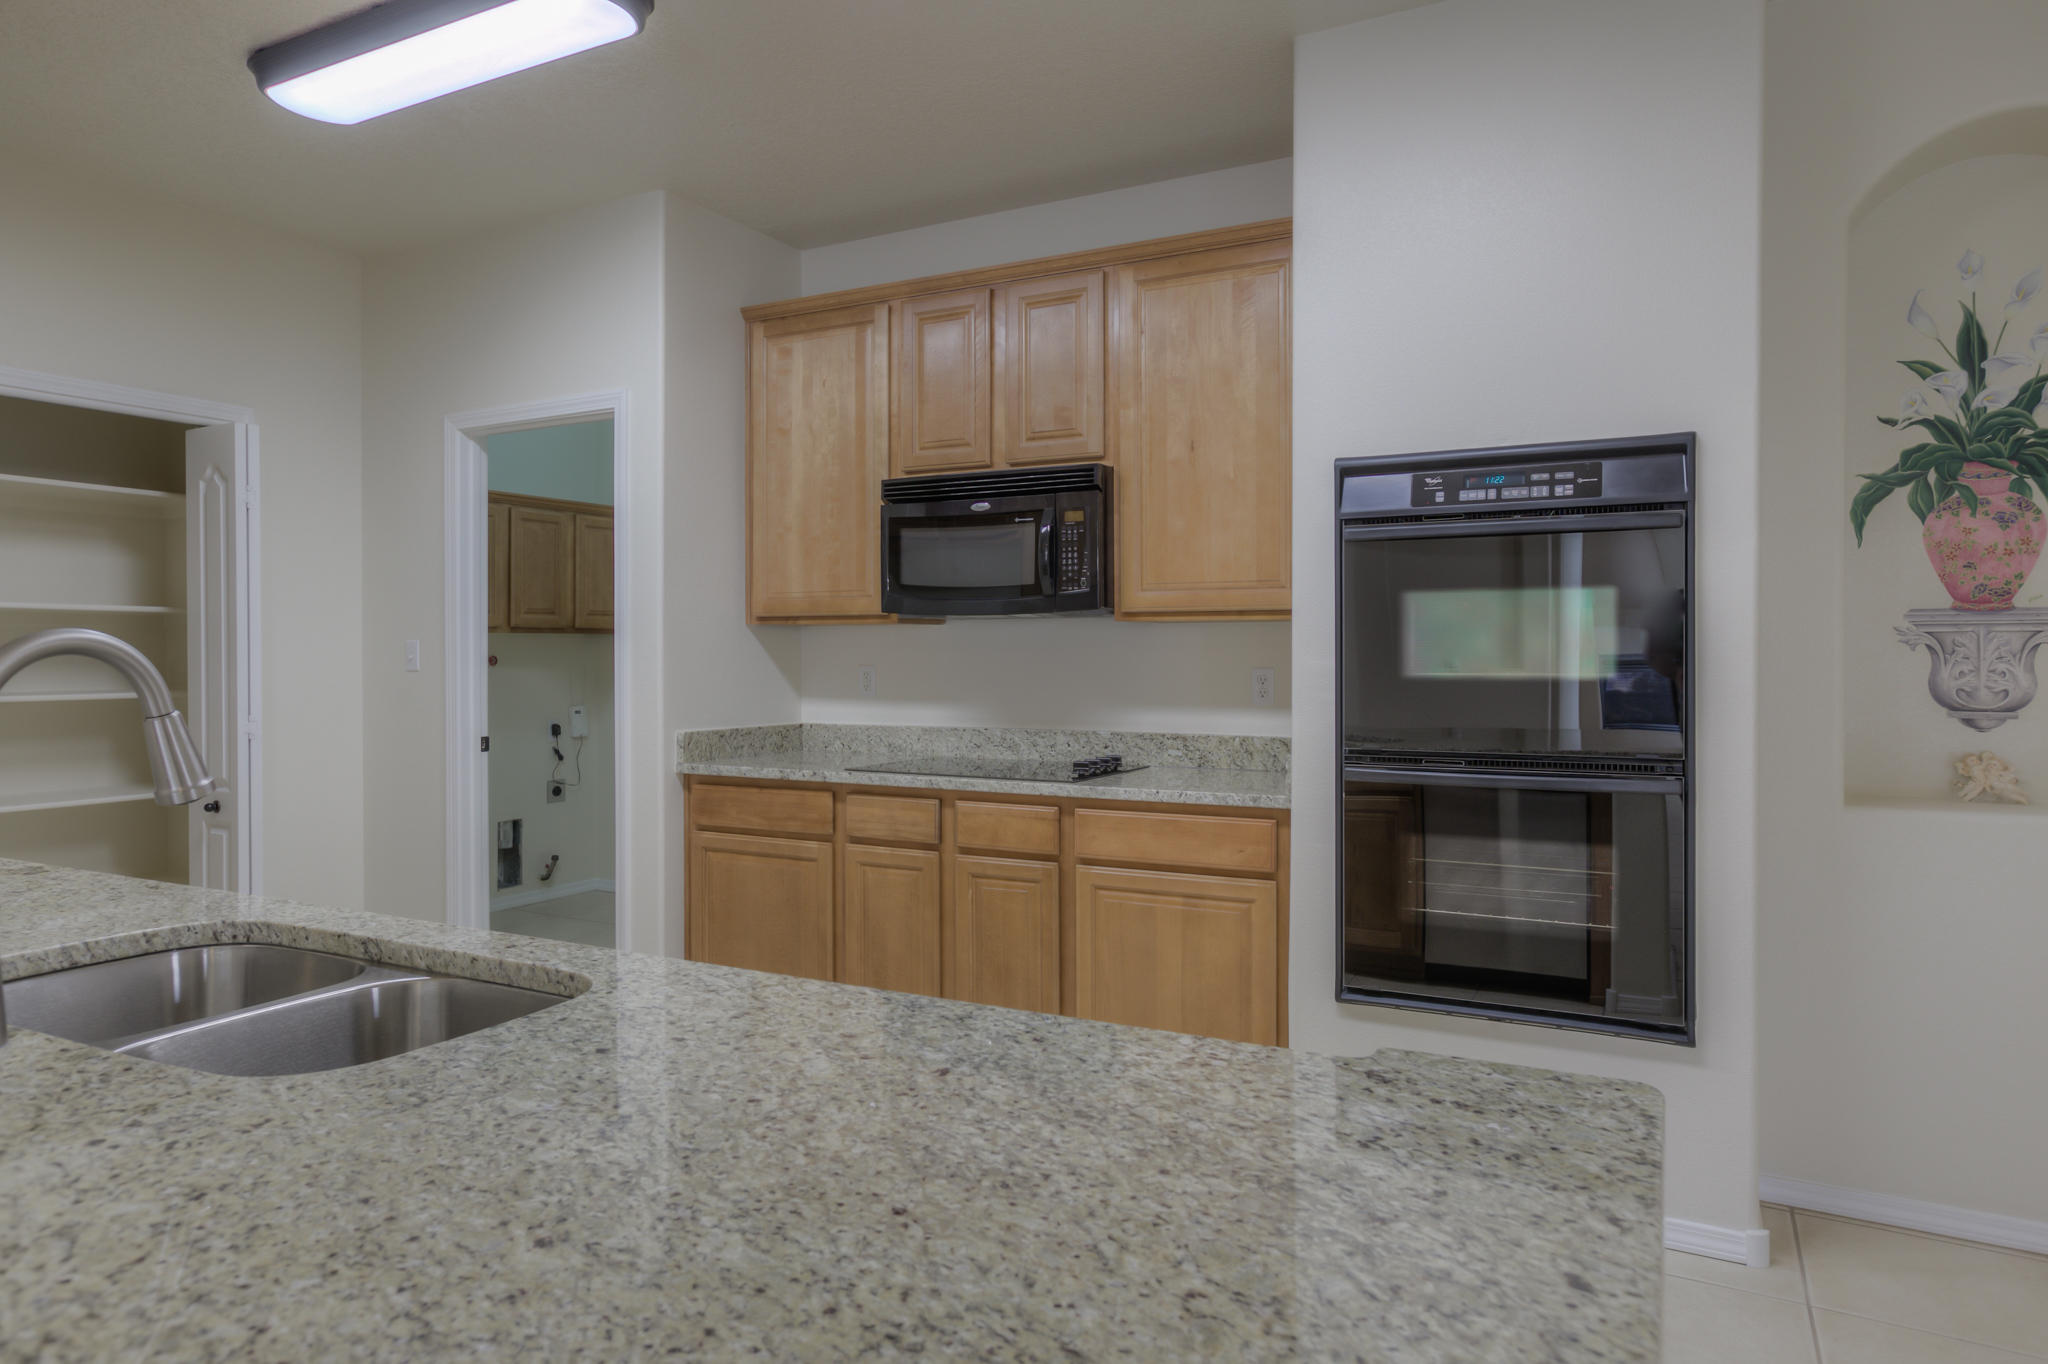 Nice Price Adjustment in this Super Popular Subdivision at  Close-in Rio Rancho!  This is a well built Centex home featuring great initial quality construction with quality updates. The Floor Plan is Open & has Two BRs down, both with Fans & a full bath down. The upstairs is exclusively a large Master Suite. Along with the 8+ ft x 8+ ft closet there is  a soaking tub, 2 sinks & separate shower. The high end kitchen amenities include Granite Tops, Bar, Double Wall Oven & Cooktop.  The Pantry is Double wide & has 42'' Hi Upper Cabinets with Crown Moulding.  The large format Tile Floors are everywhere except the BRs & 9 FT Tall Ceilings throughout both floors. Bonuses are Direct vent FP, Decorator color walls w/ white doors & trims, 2'' blinds, & Extra Garage Storage.  See it Now!!